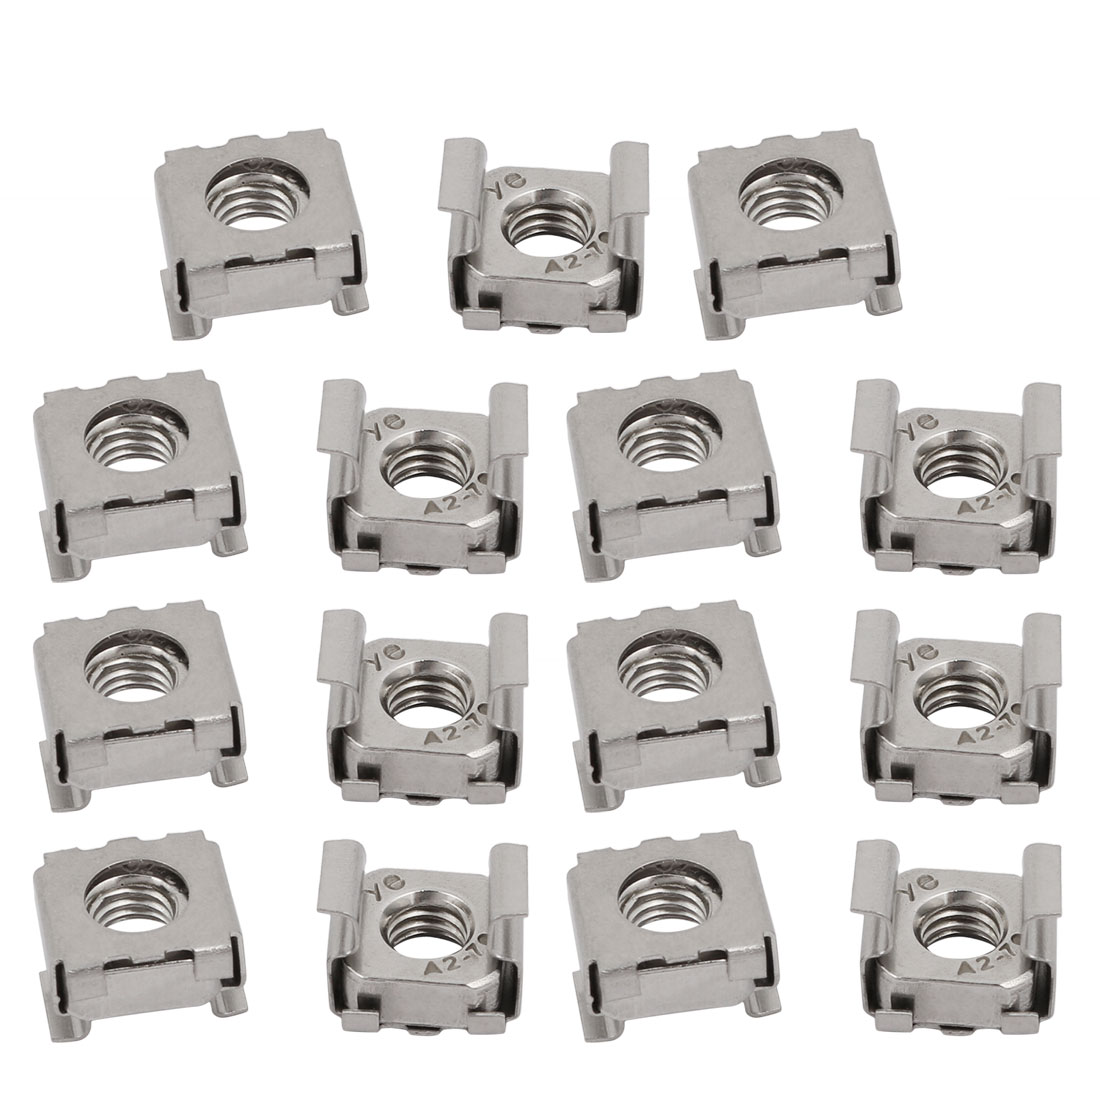 15pcs M6 Stainless Steel Cage Nut Silver Tone for Server Shelf Cabinet